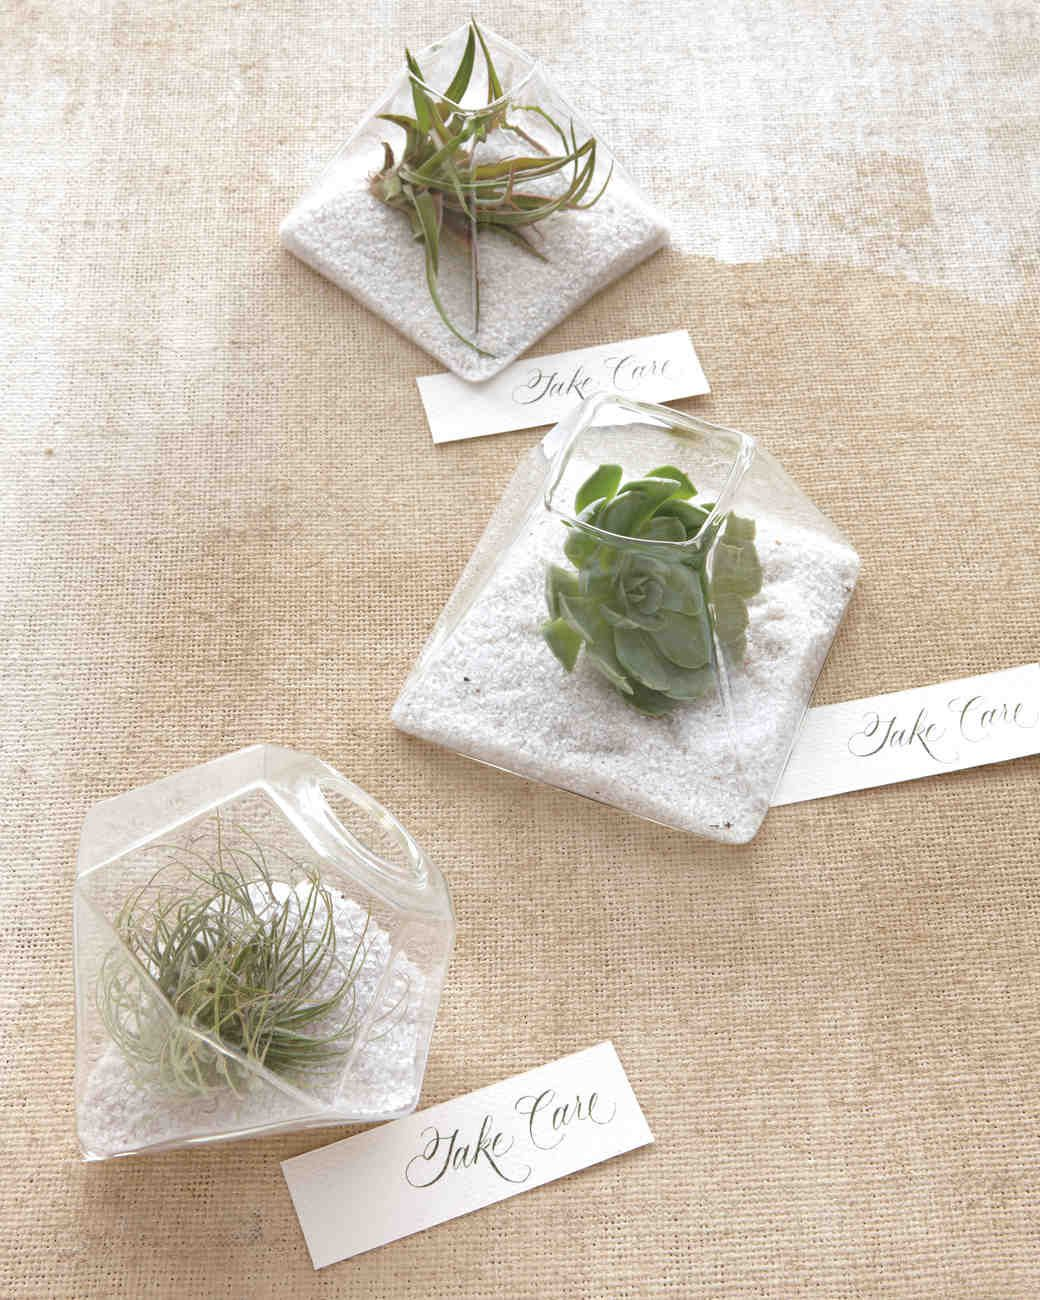 36 Ideas for Using Succulents at Your Wedding | Martha stewart ...